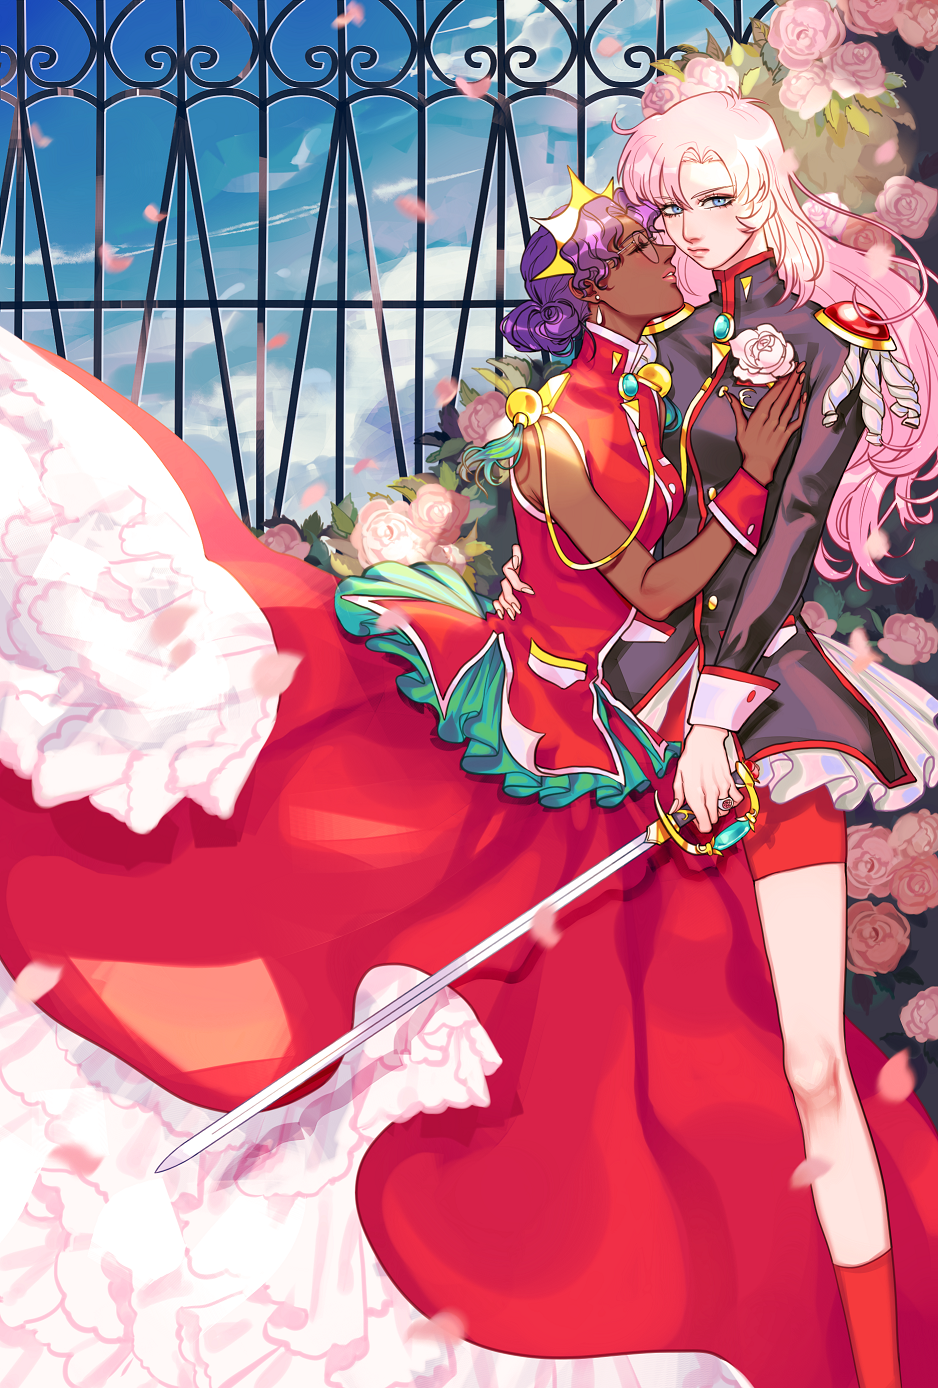 2girls aiguillette arm_around_waist bangs bike_shorts blue_eyes classic-tea closed_eyes commentary couple crown curly_hair dark_skin dress earrings epaulettes feet_out_of_frame fence flower frills glasses hand_on_another's_chest highres himemiya_anthy holding holding_sword holding_weapon jewelry long_dress long_hair long_sleeves looking_at_viewer multiple_girls outdoors petals petticoat pink_flower pink_hair pink_lips pink_rose purple_hair red_dress red_legwear red_shorts ring rose rose_bush rose_petals short_hair shorts shoujo_kakumei_utena sky sleeveless sleeveless_dress socks standing sword tassel tenjou_utena weapon wrist_cuffs yuri